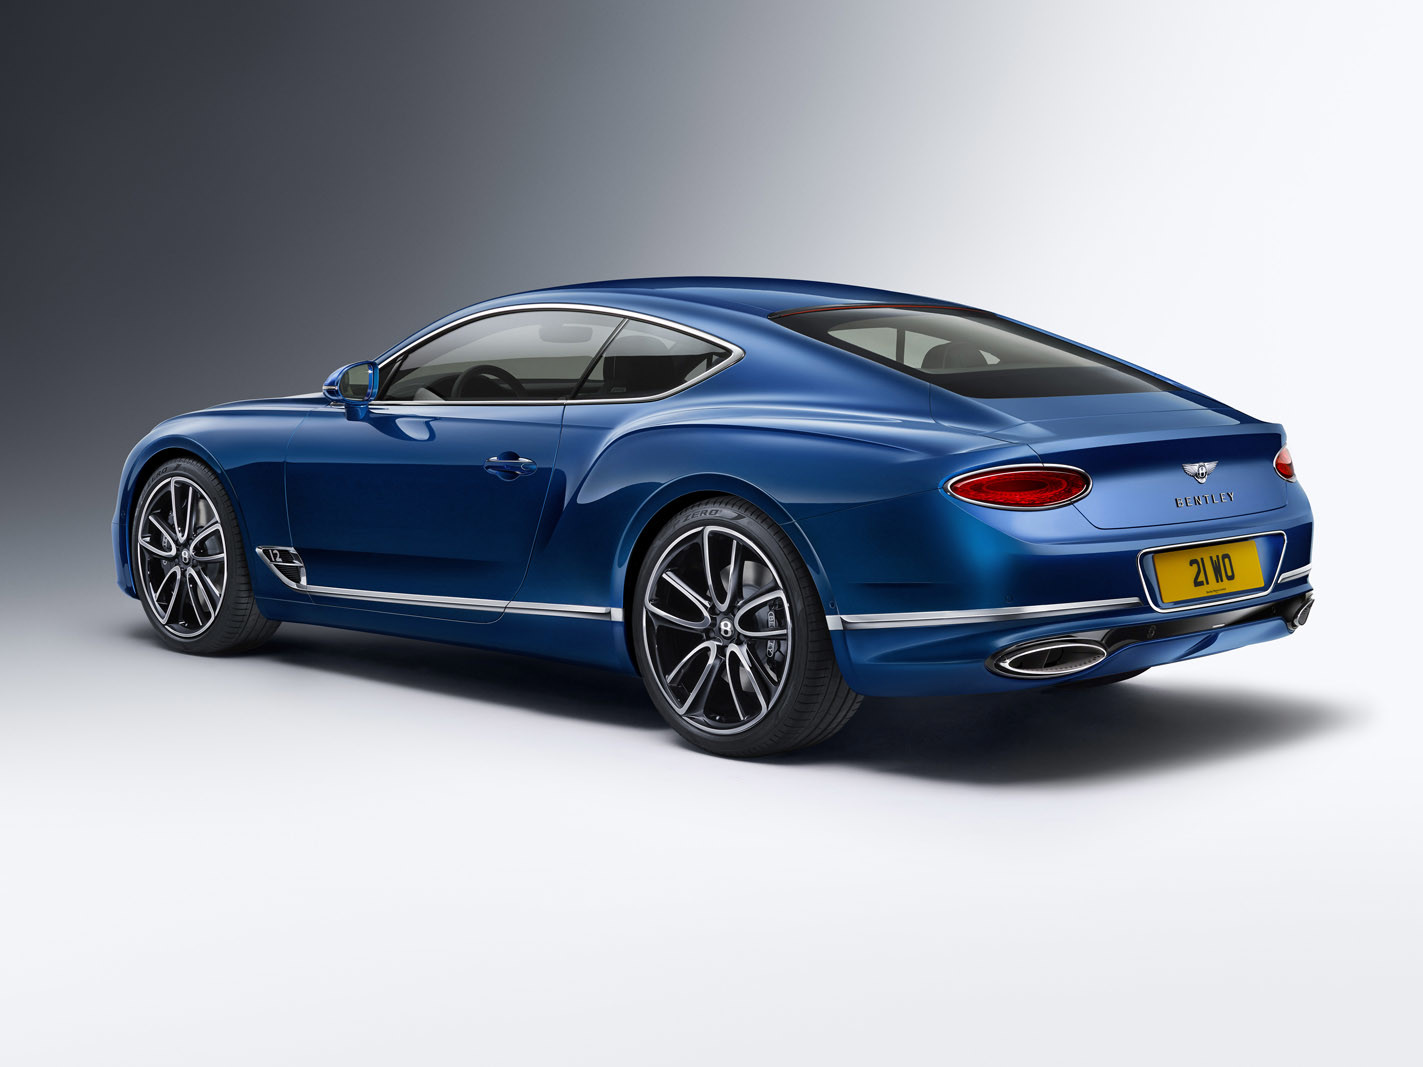 Foto de Bentley Continental GT 2018 (34/36)